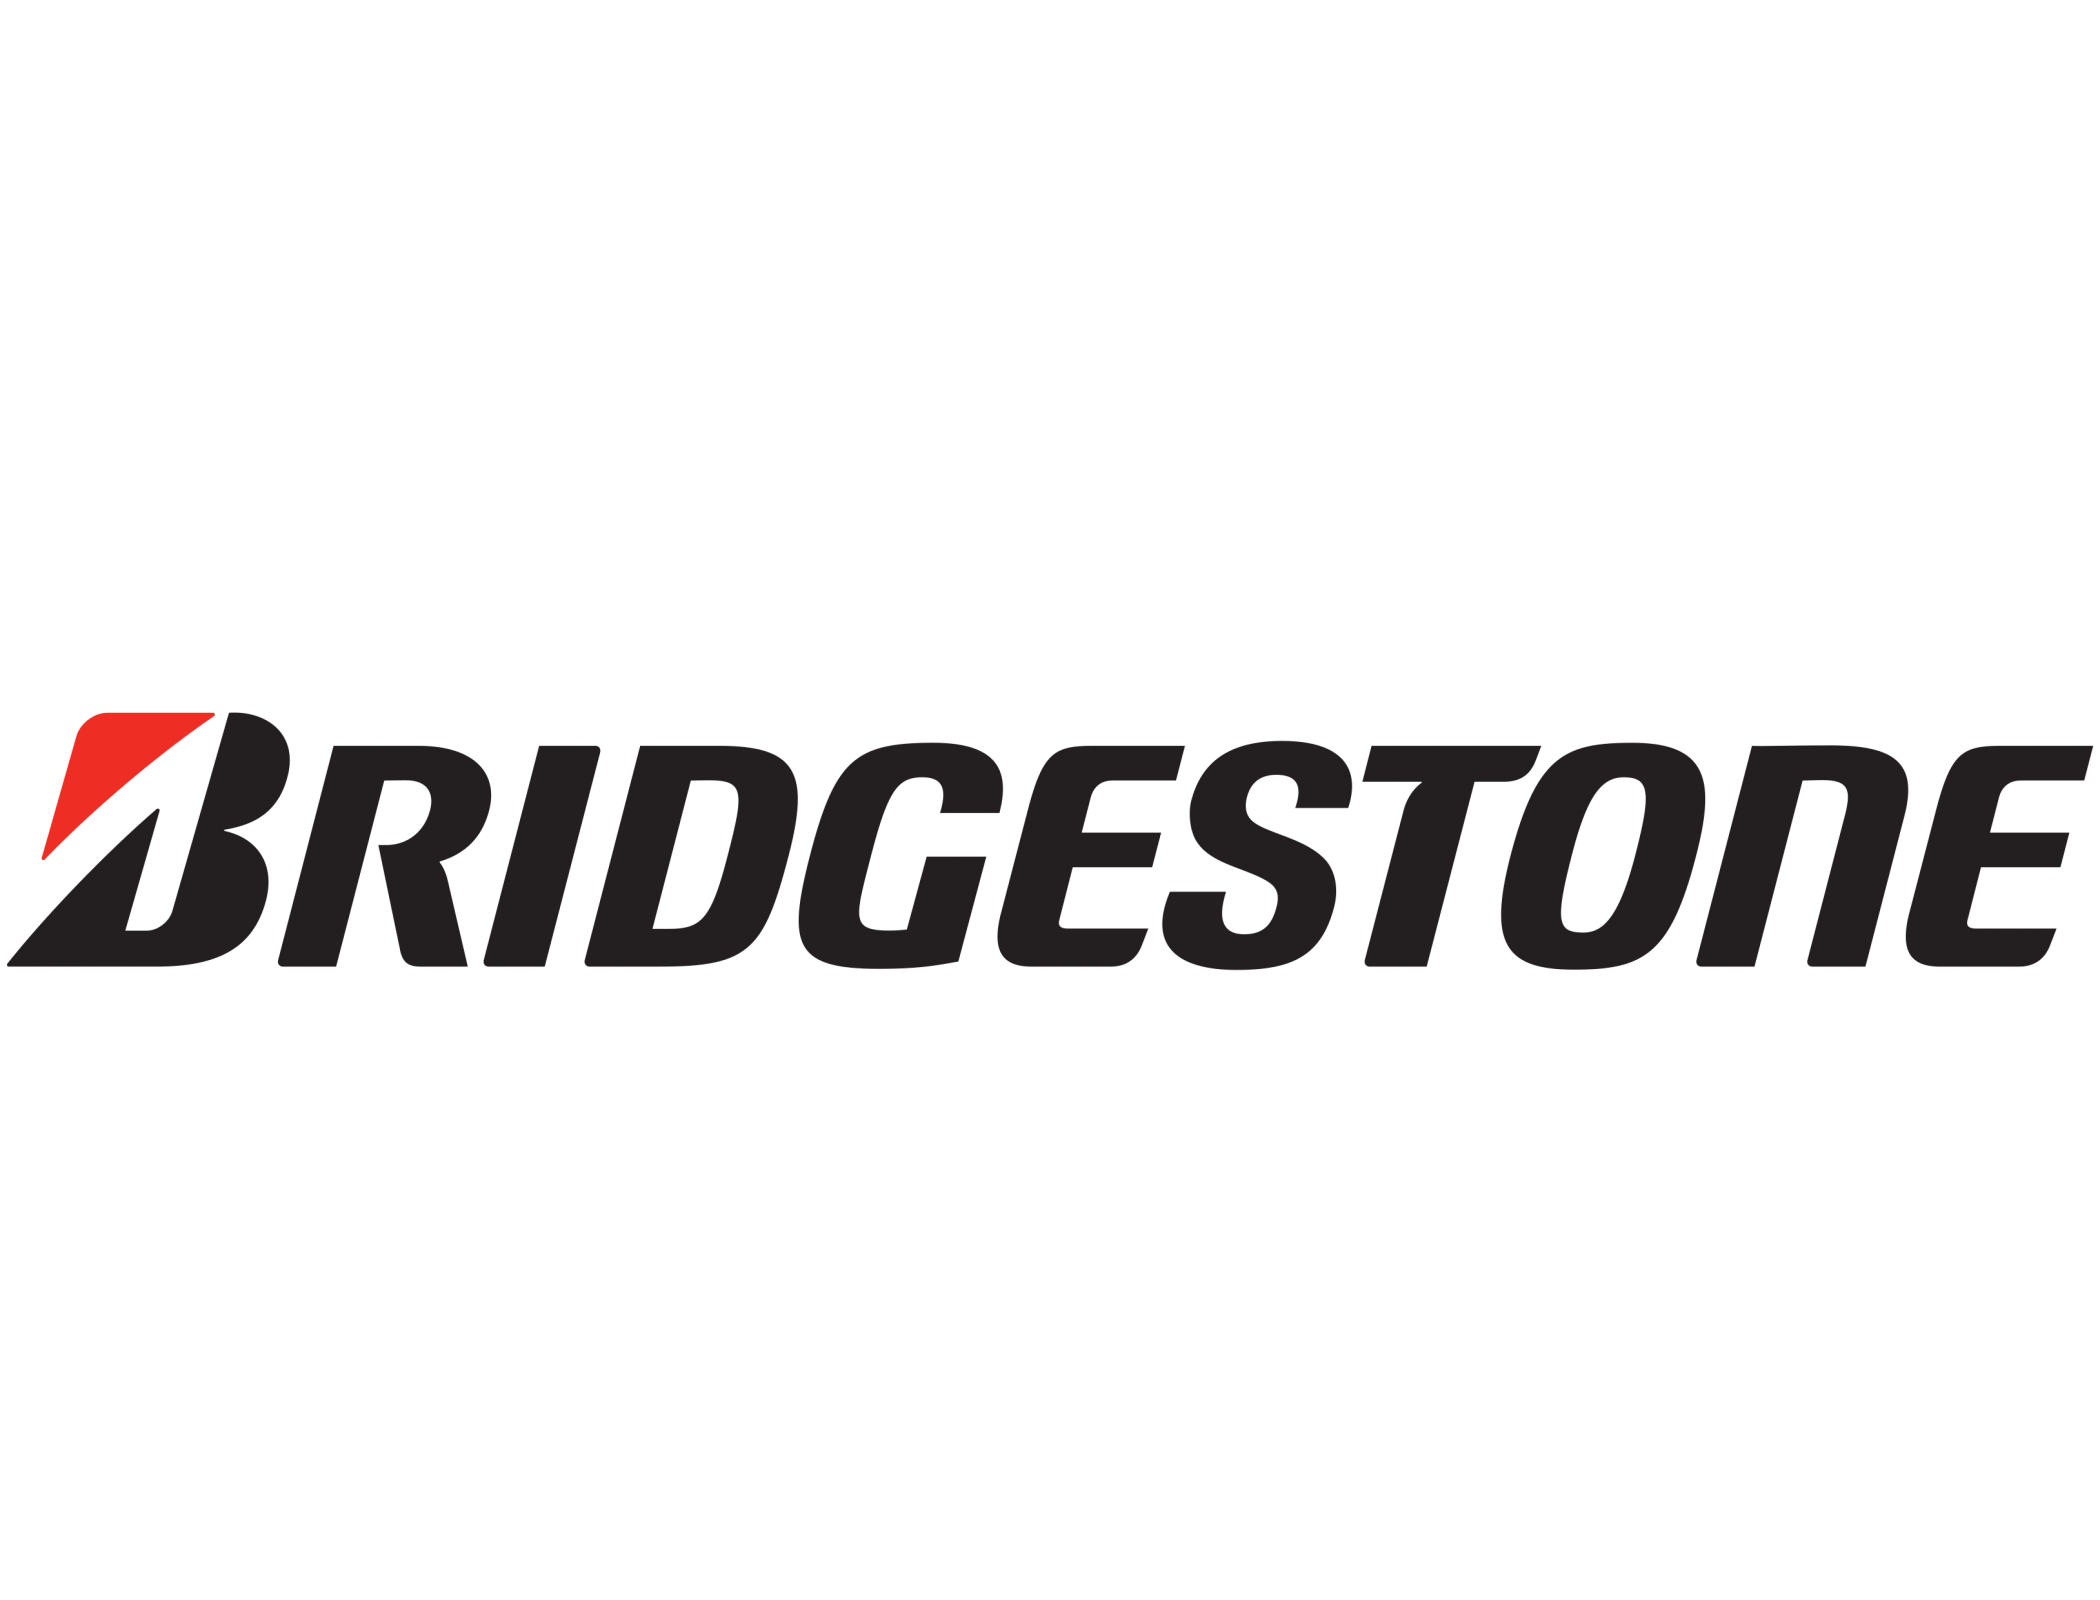 Bridgestone Logo - Original